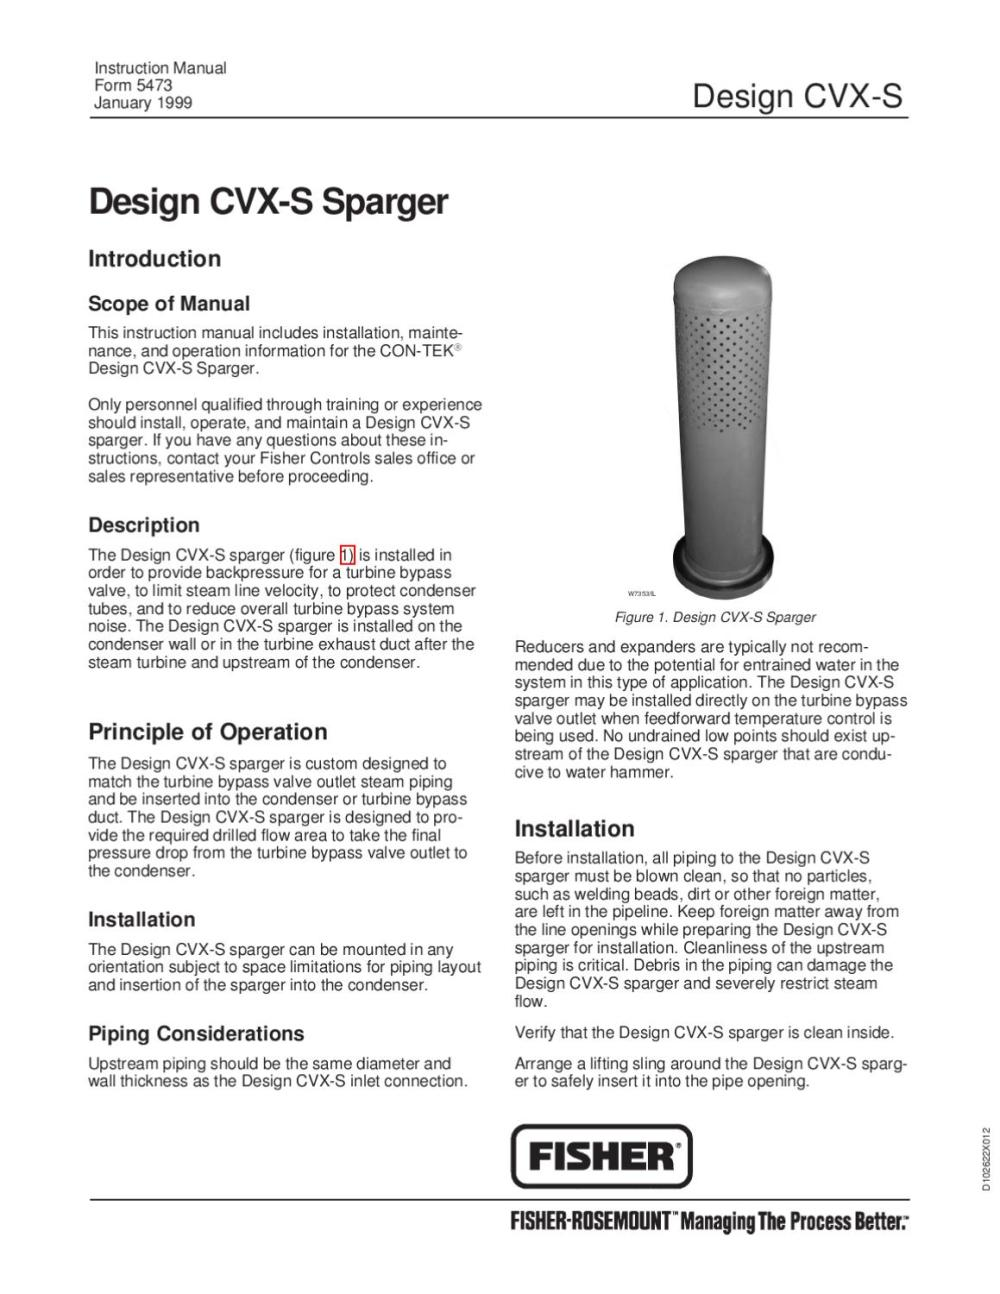 medium resolution of cvx s sparger instruction manual by rmc process controls filtration inc issuu